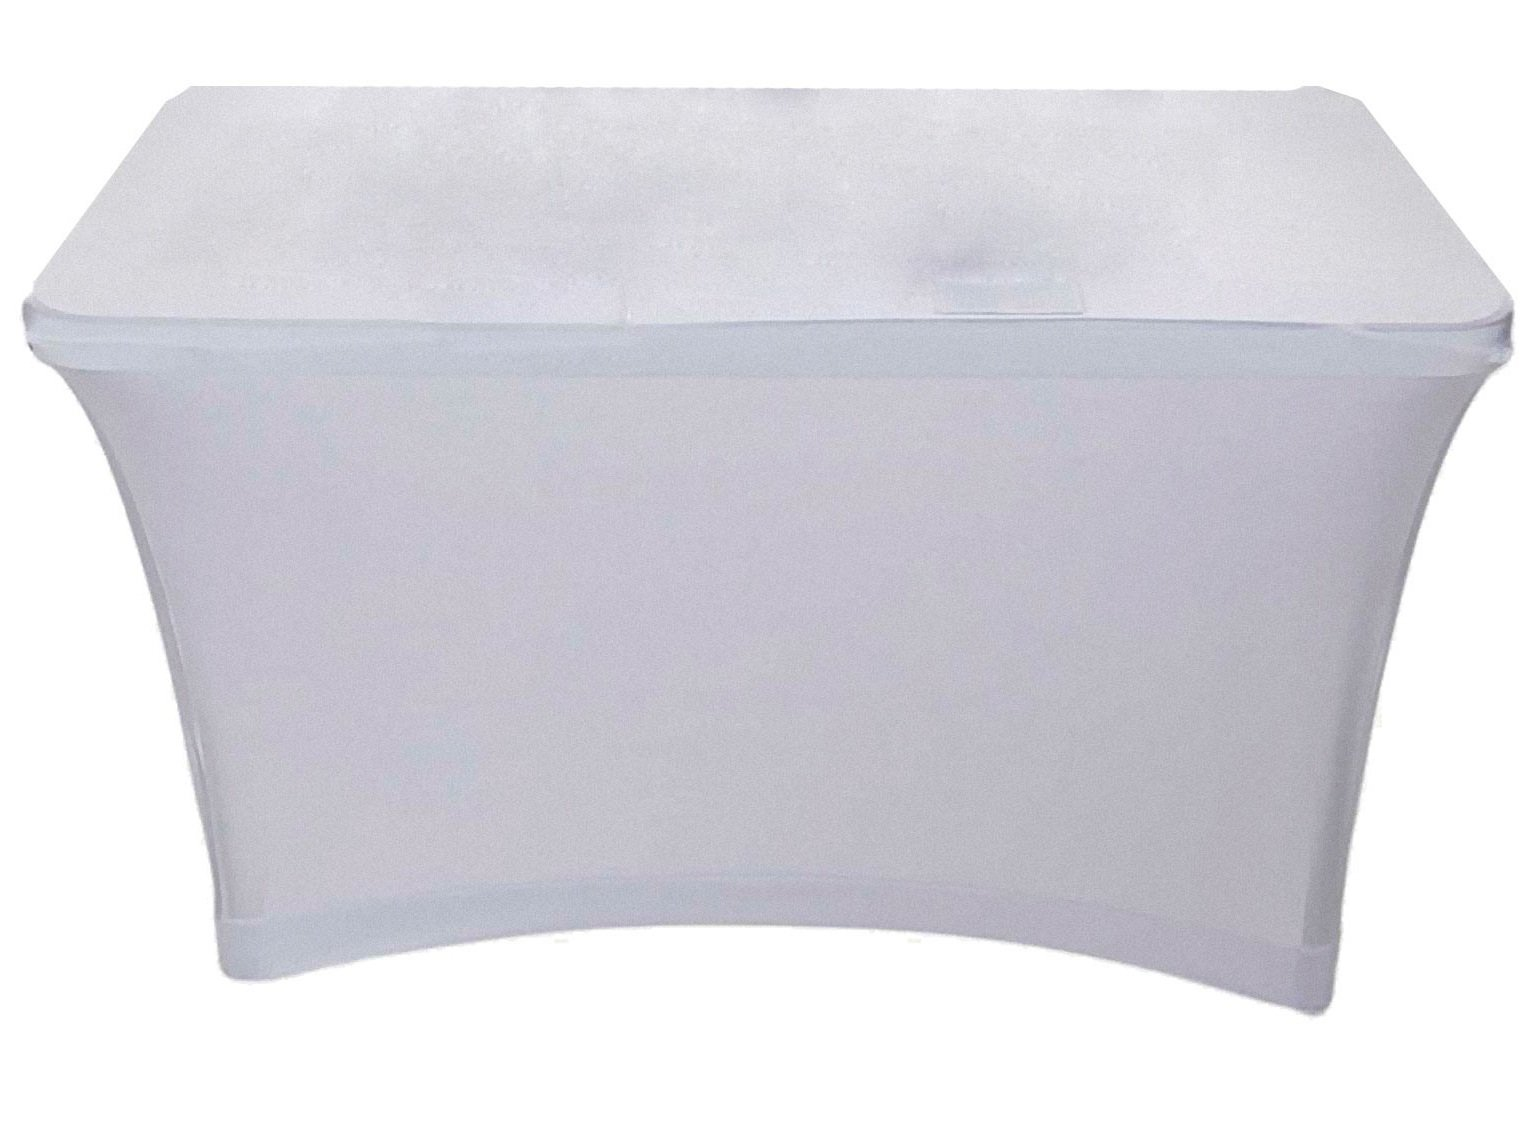 scrim-king-ss-tbl402-w-table-scrim-4ft---closed-back.jpg